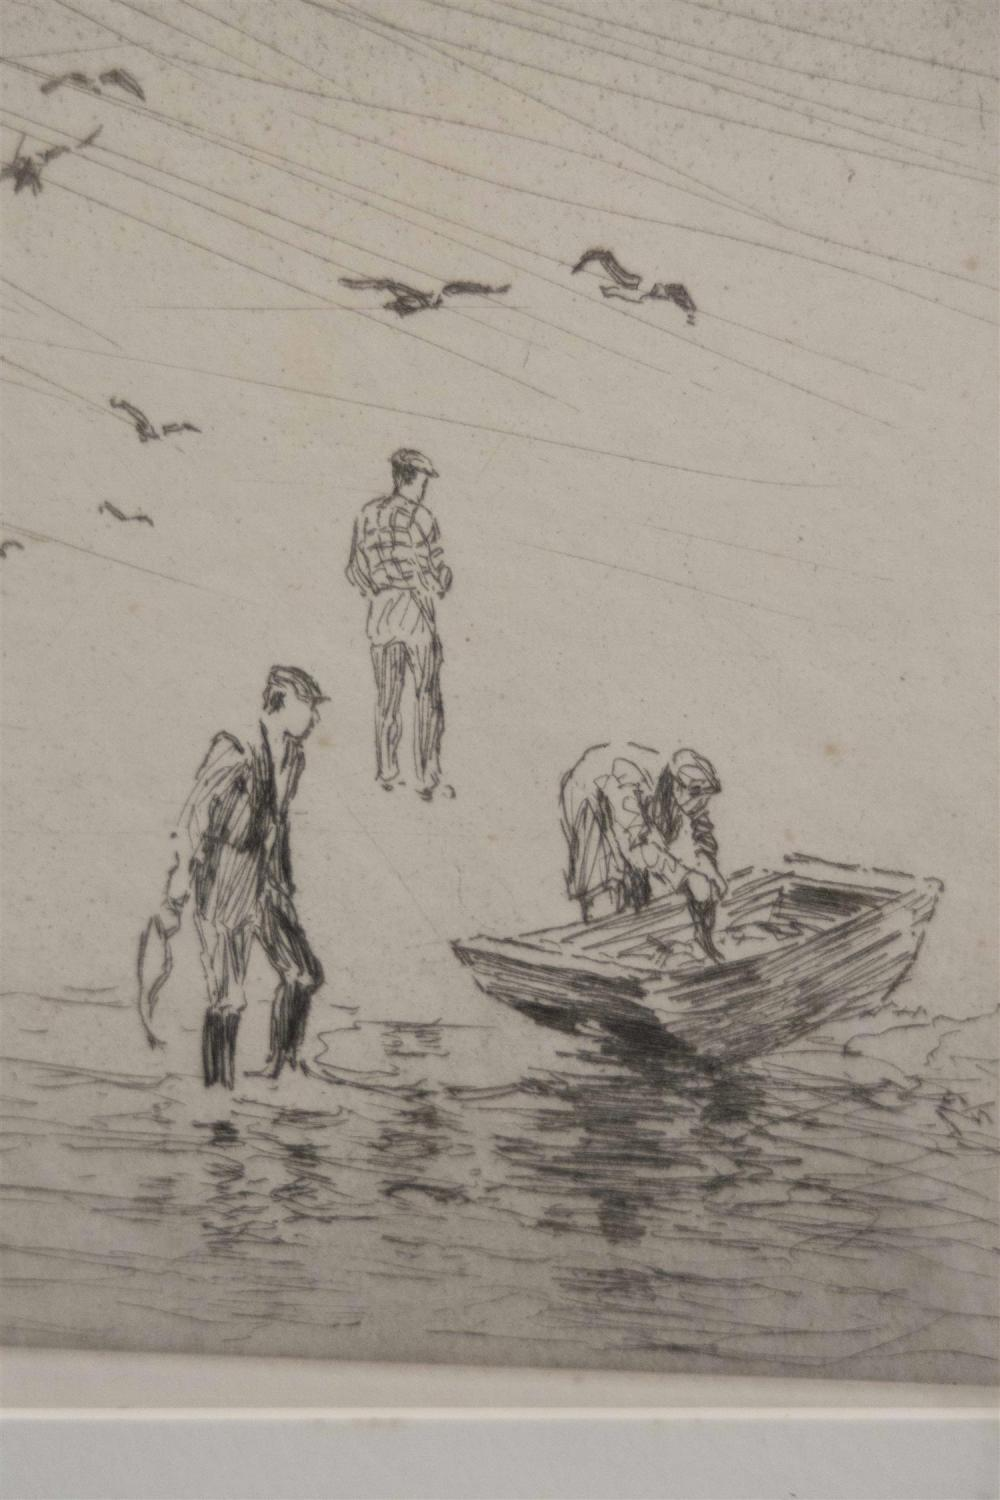 CHARLES H. WOODBURY, Massachusetts/Maine, 1864-1940, Three sporting scenes., Drypoint etchings on paper, 10.75